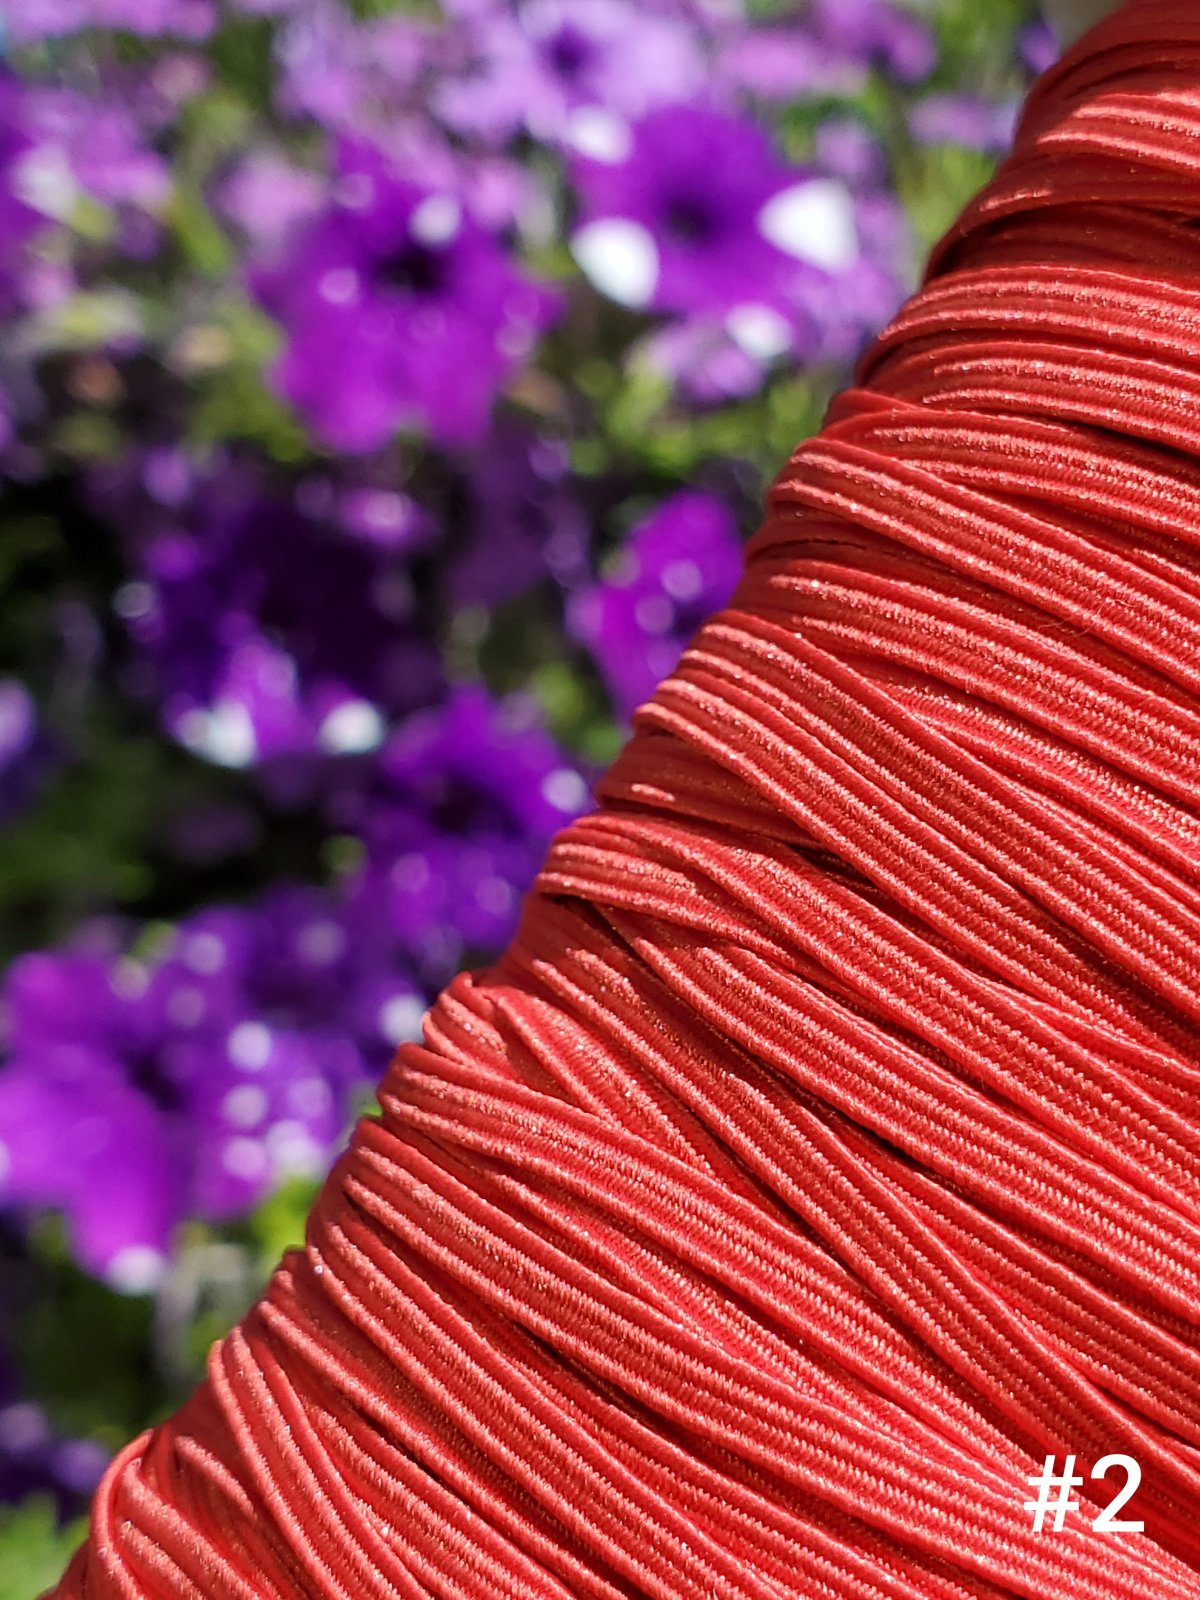 Cindy-rellas 1/8 inch (3mm) Elastic - Med Red